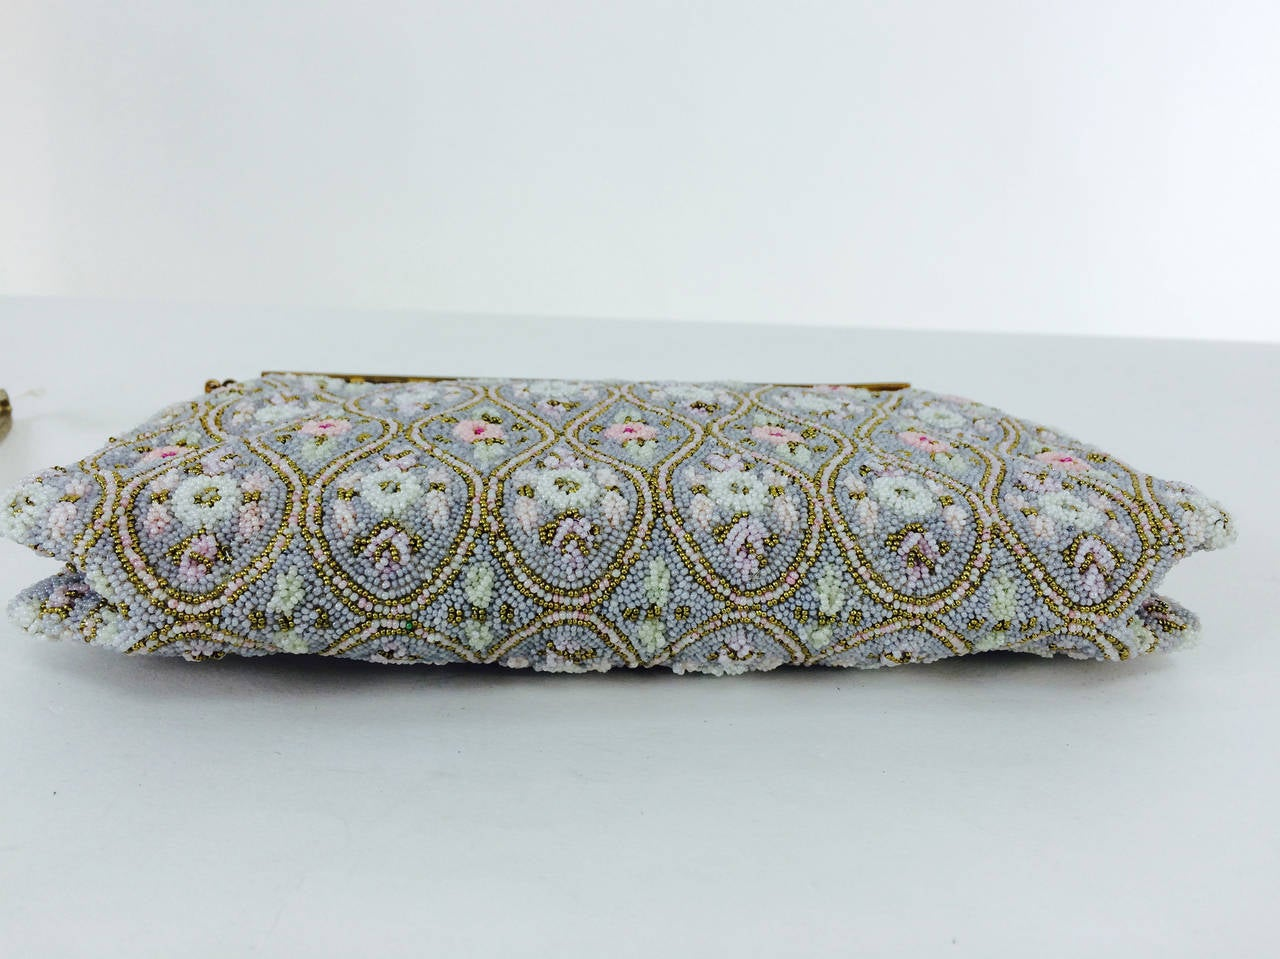 Pastel caviar beaded floral design evening bag made in France 1950s 7